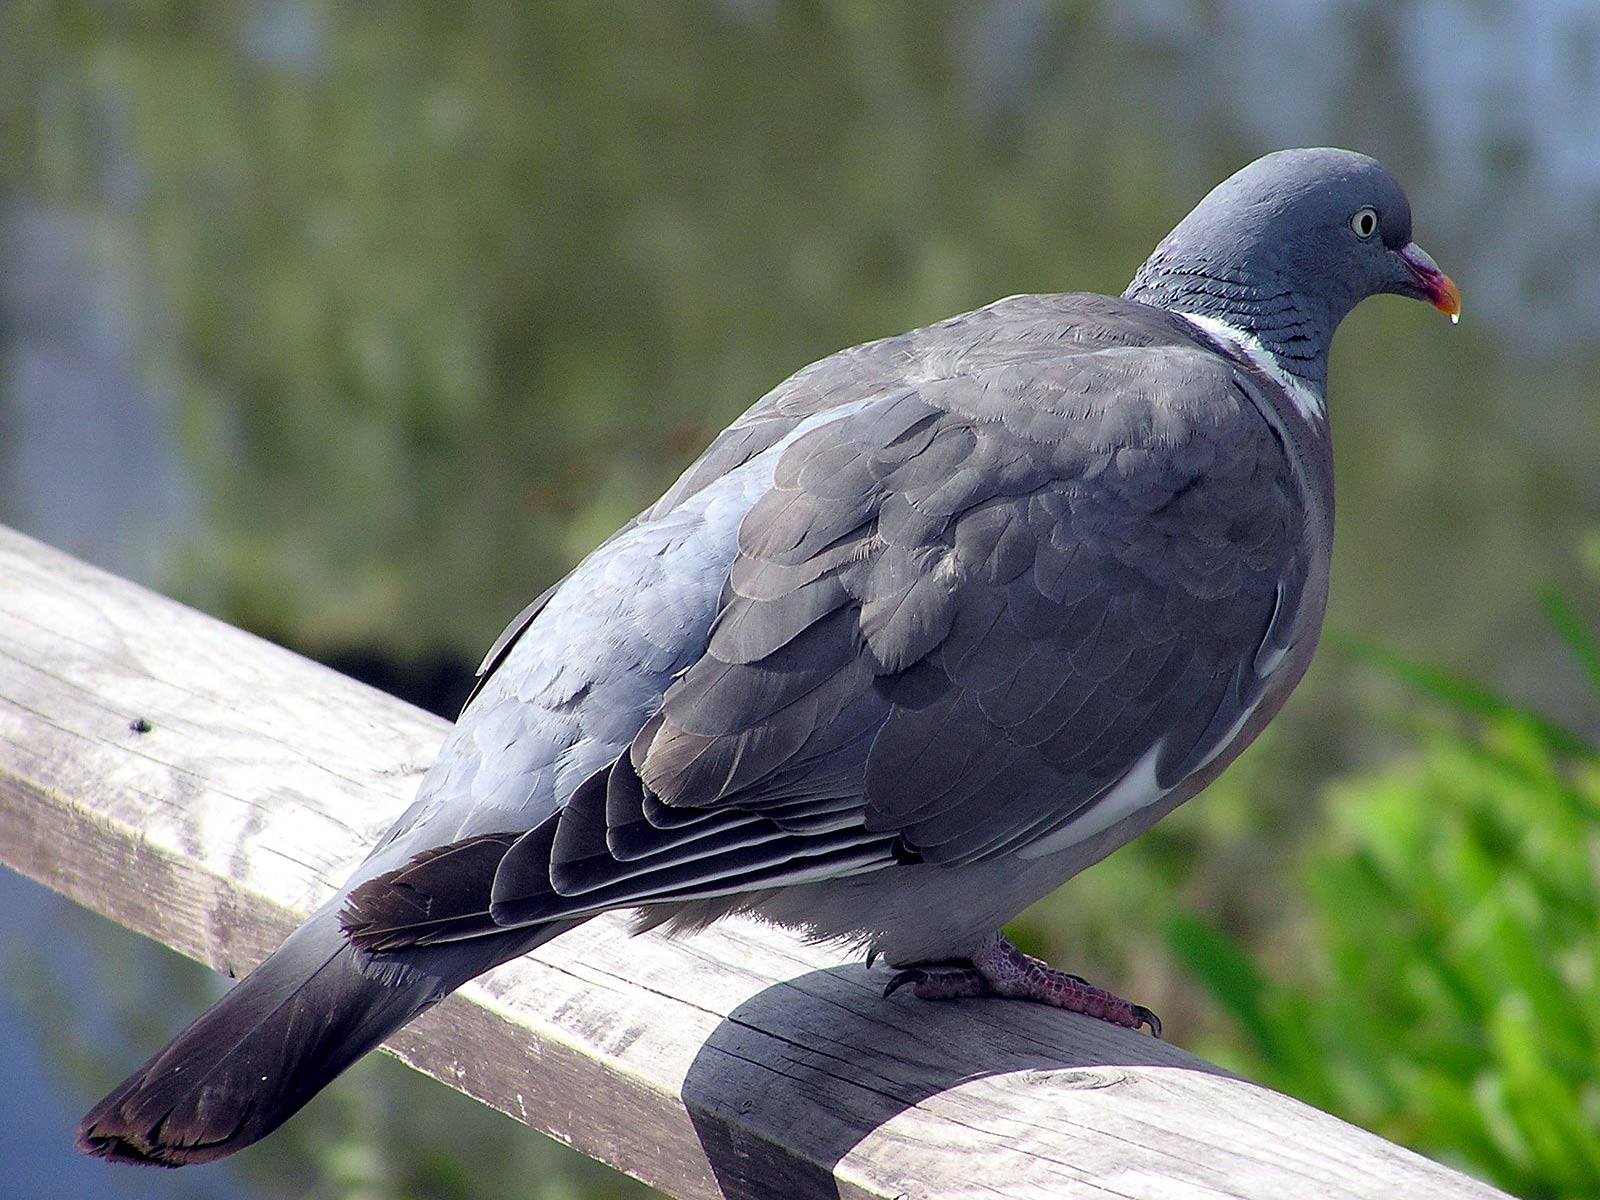 Pigeon Images by Chia Broomfield on B.SCB Wallpapers